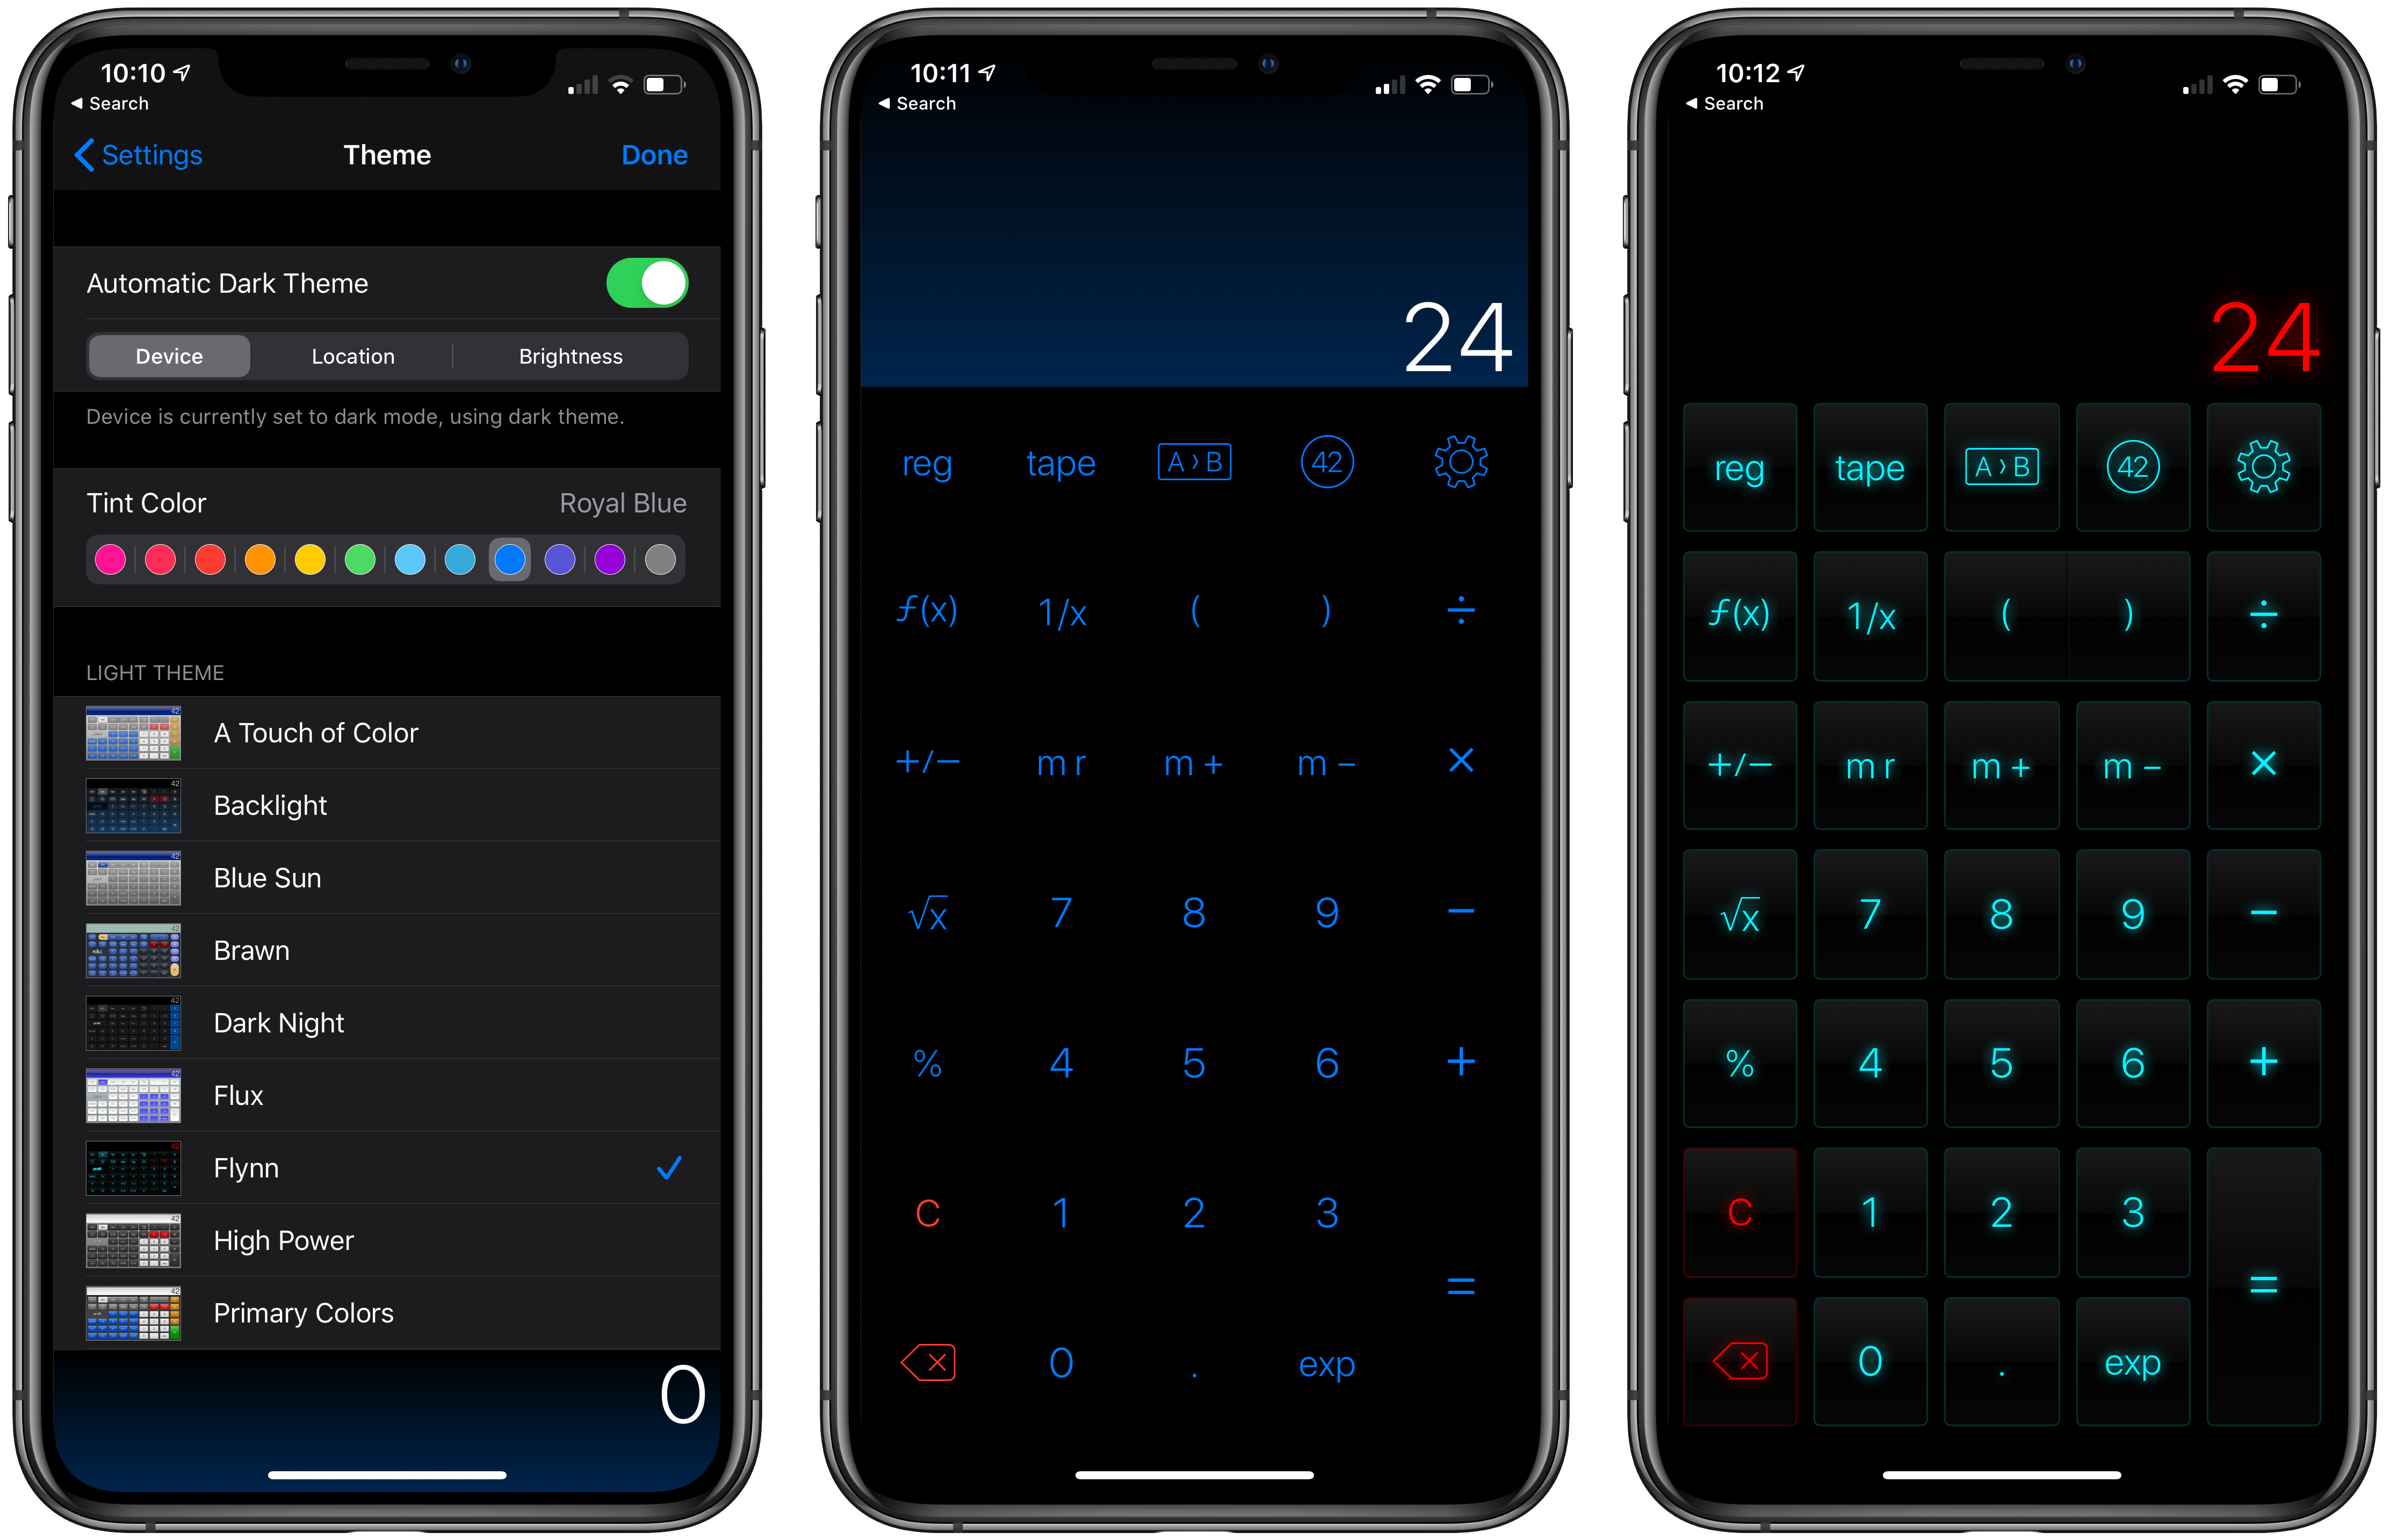 Setting up dark mode themes in PCalc.